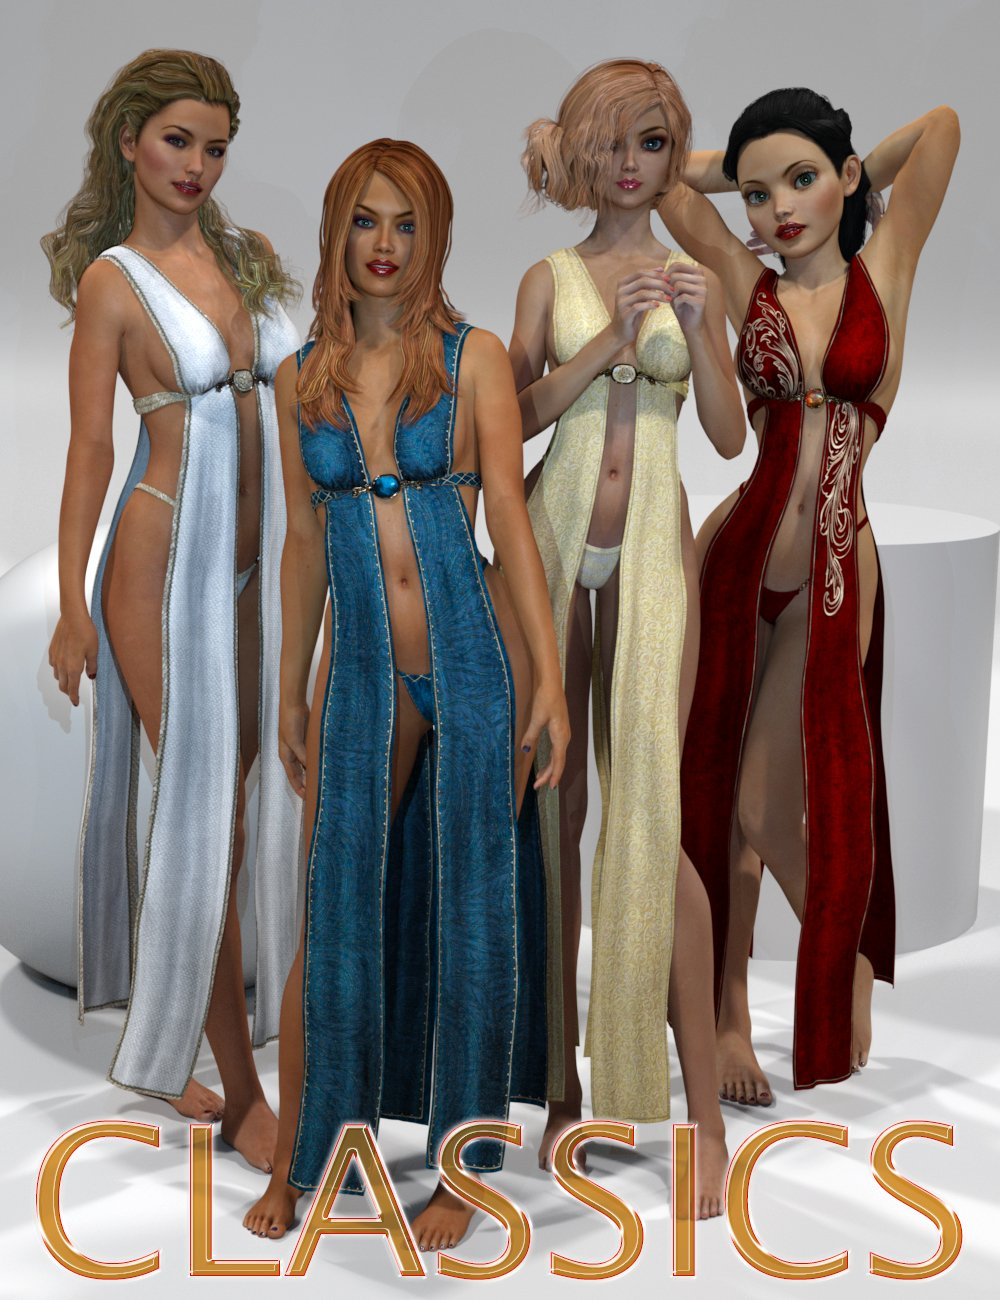 Genesis 2 Legacies for Genesis 3 Female: Classics by: SloshWerks, 3D Models by Daz 3D